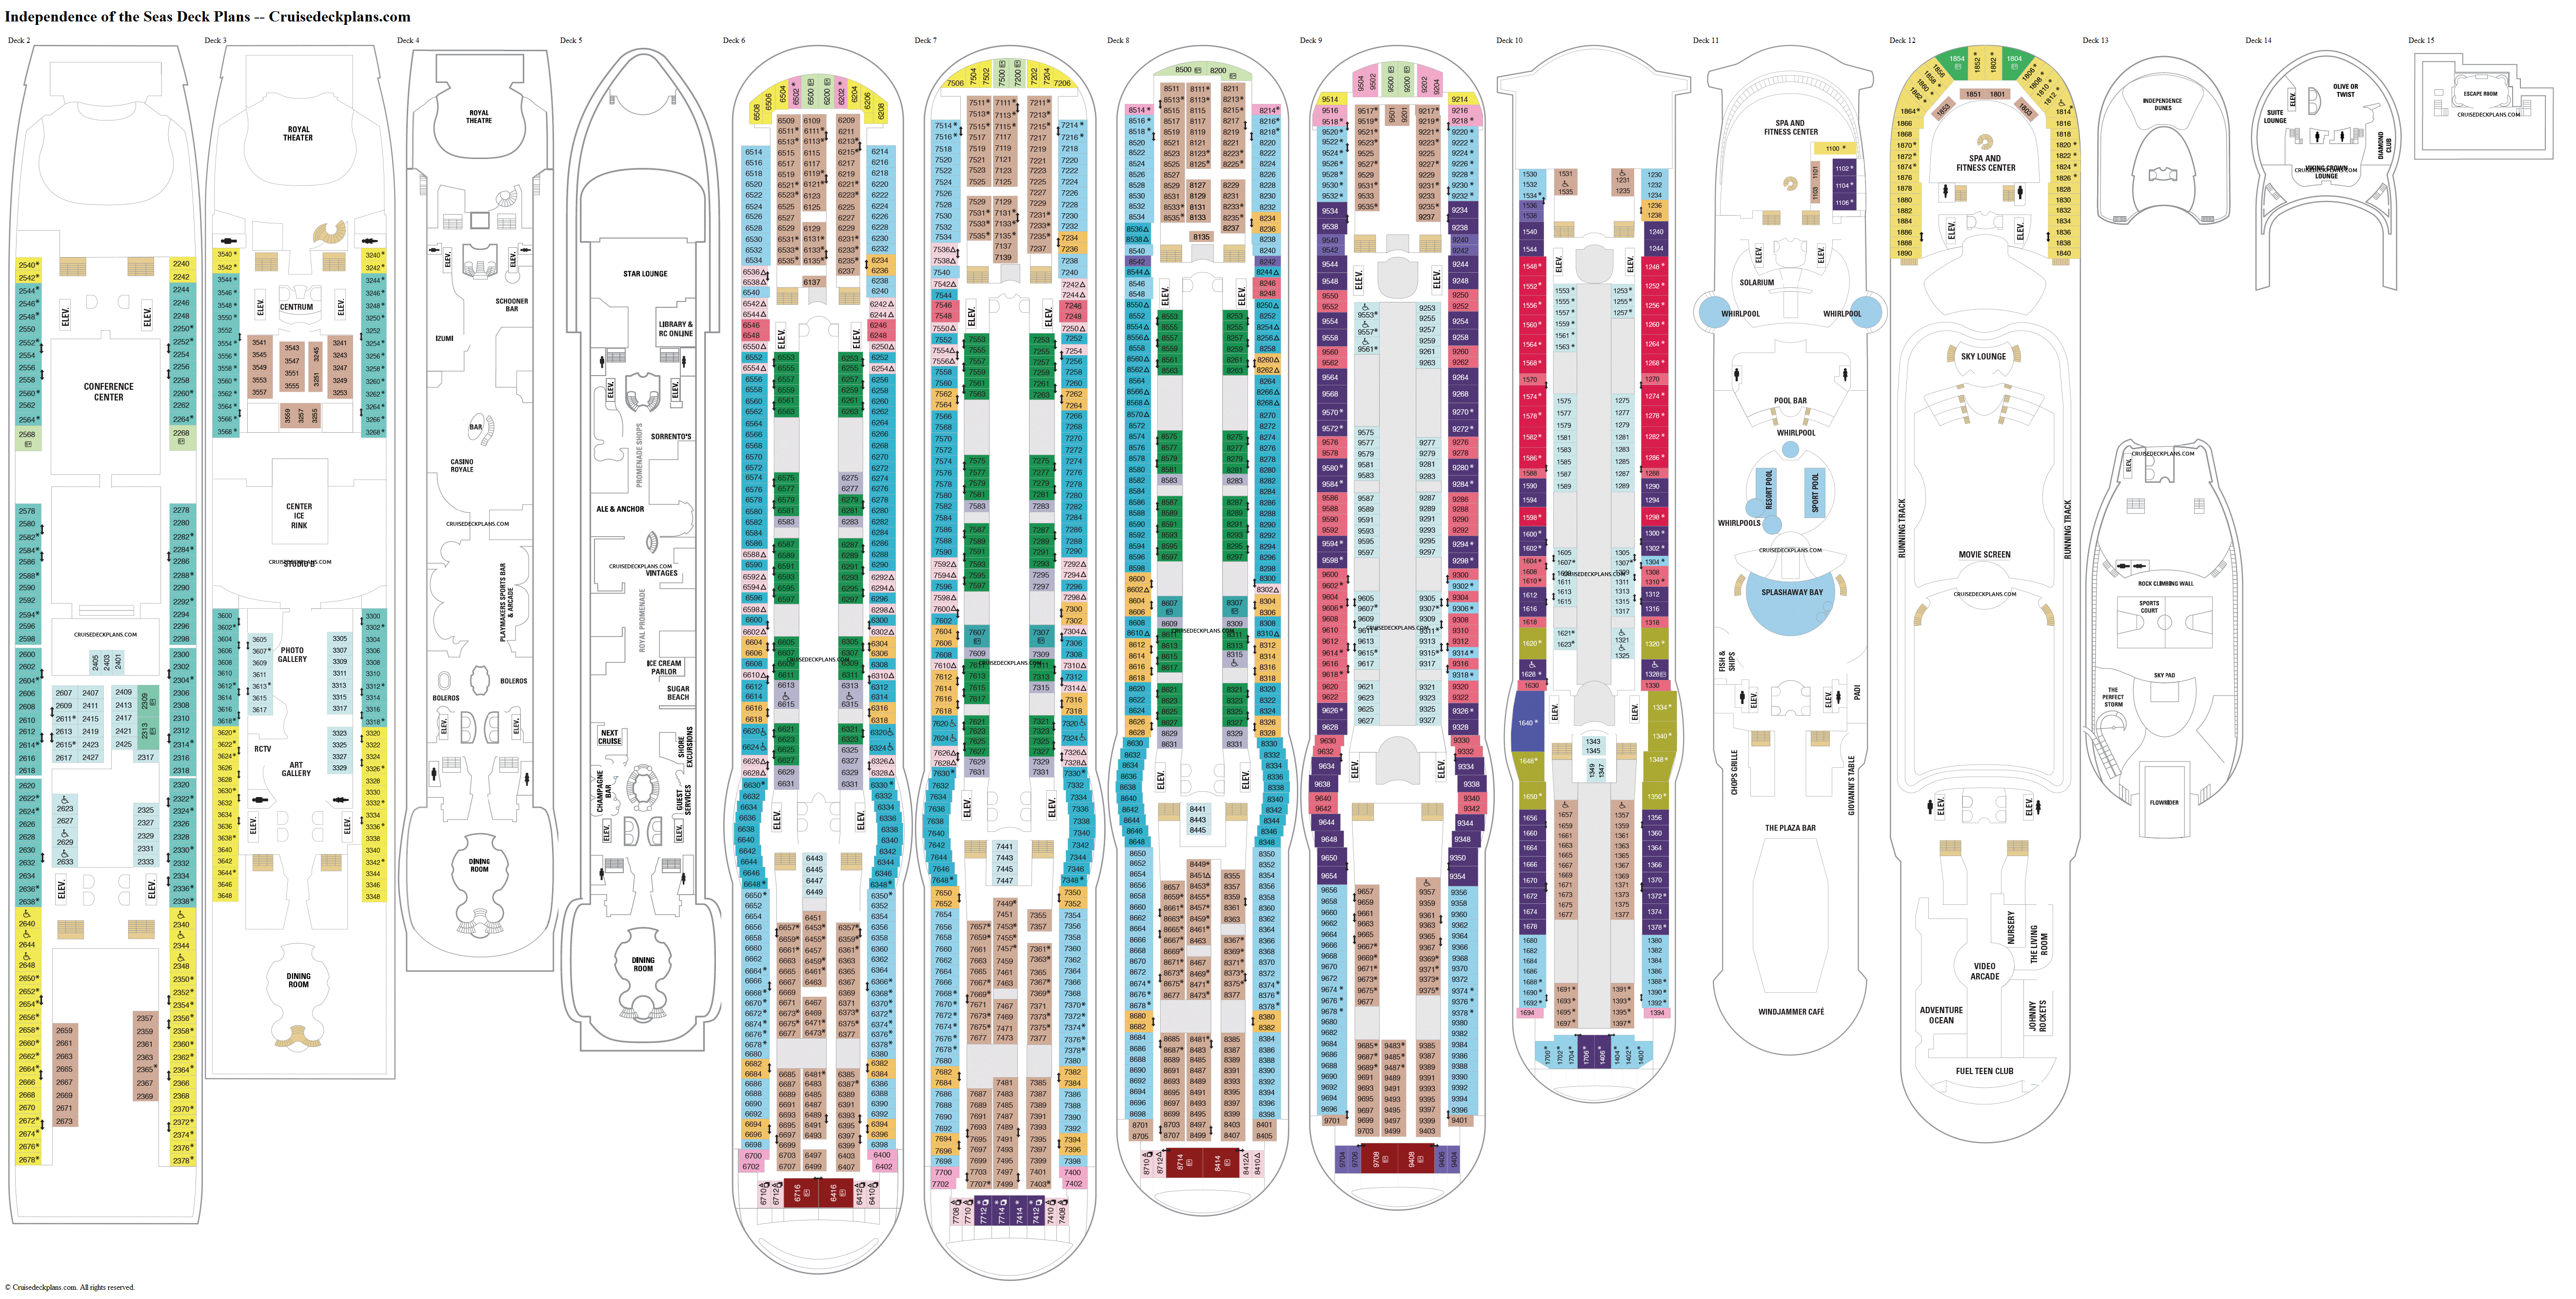 Independence of the Seas deck plans image